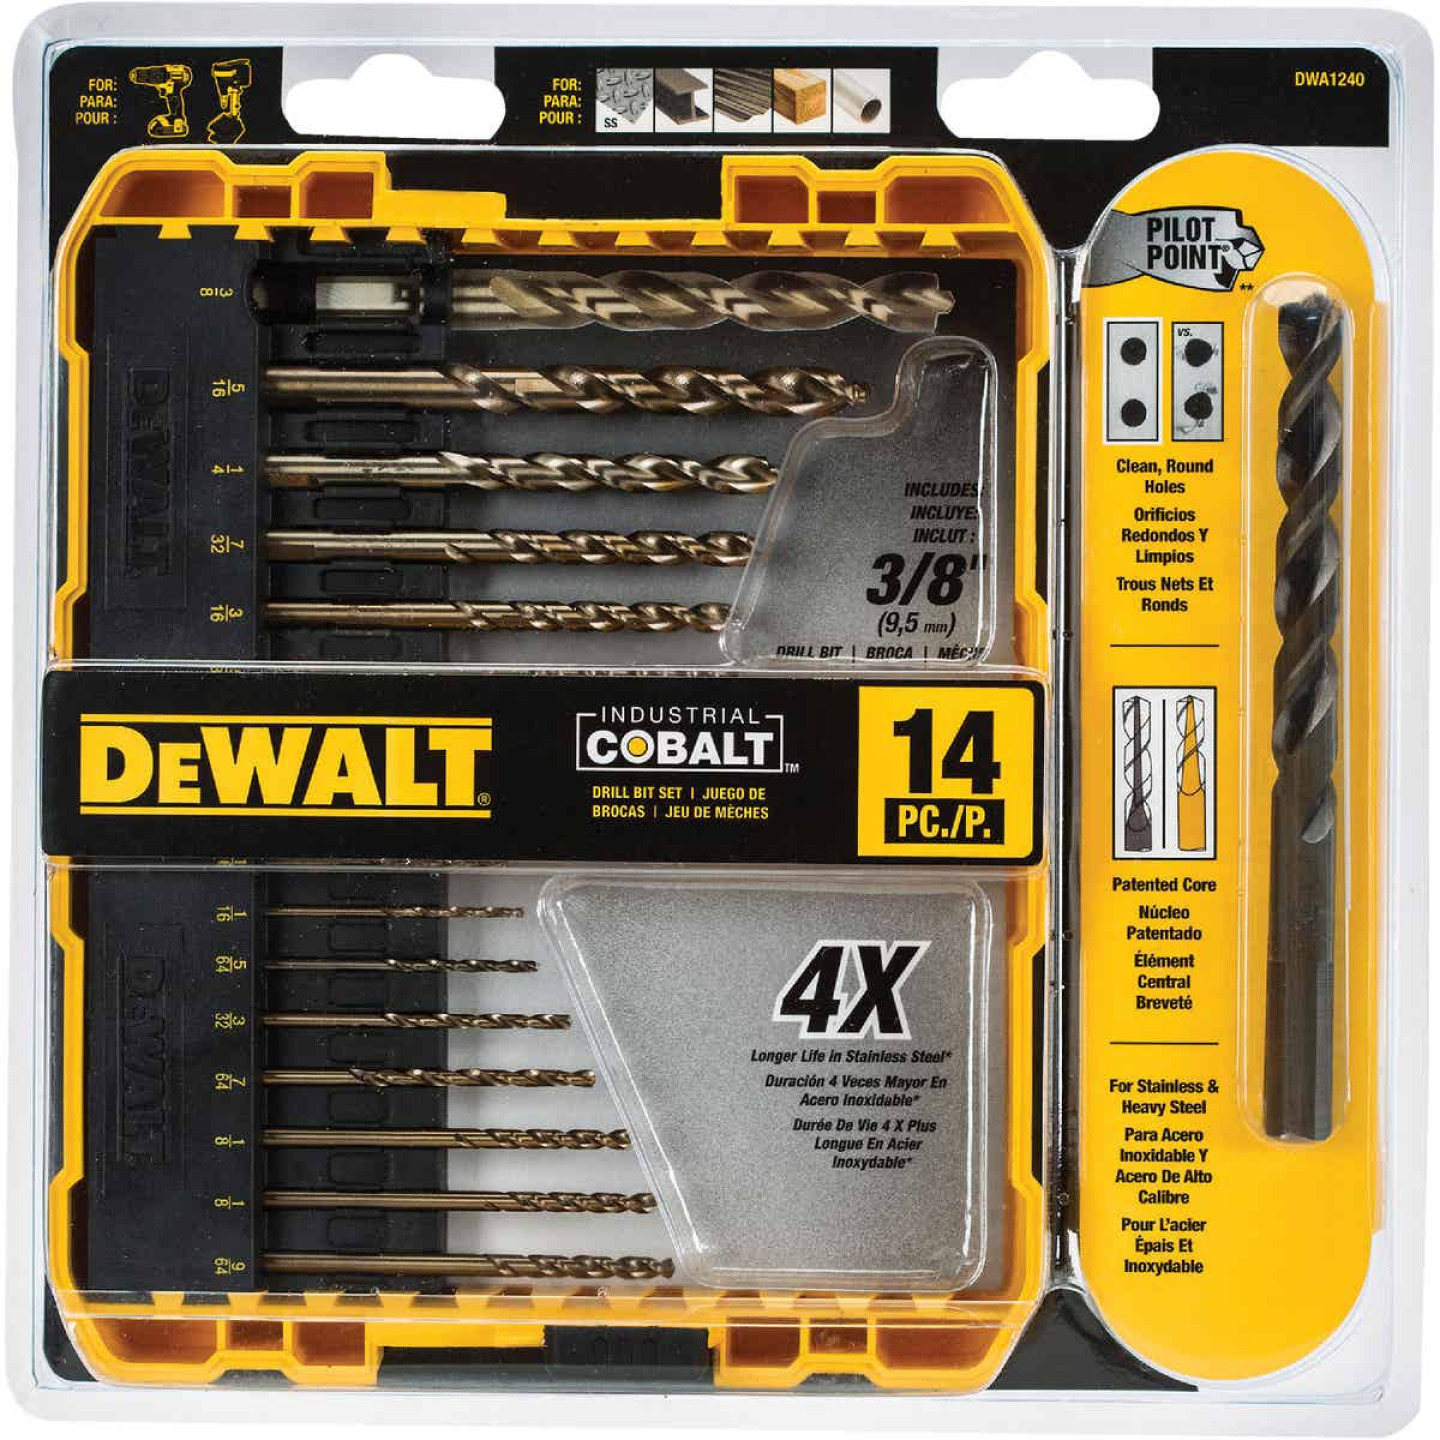 DeWalt 14-Piece Cobalt Drill Bit Set, 1/16 In. thru 3/8 In. Image 1